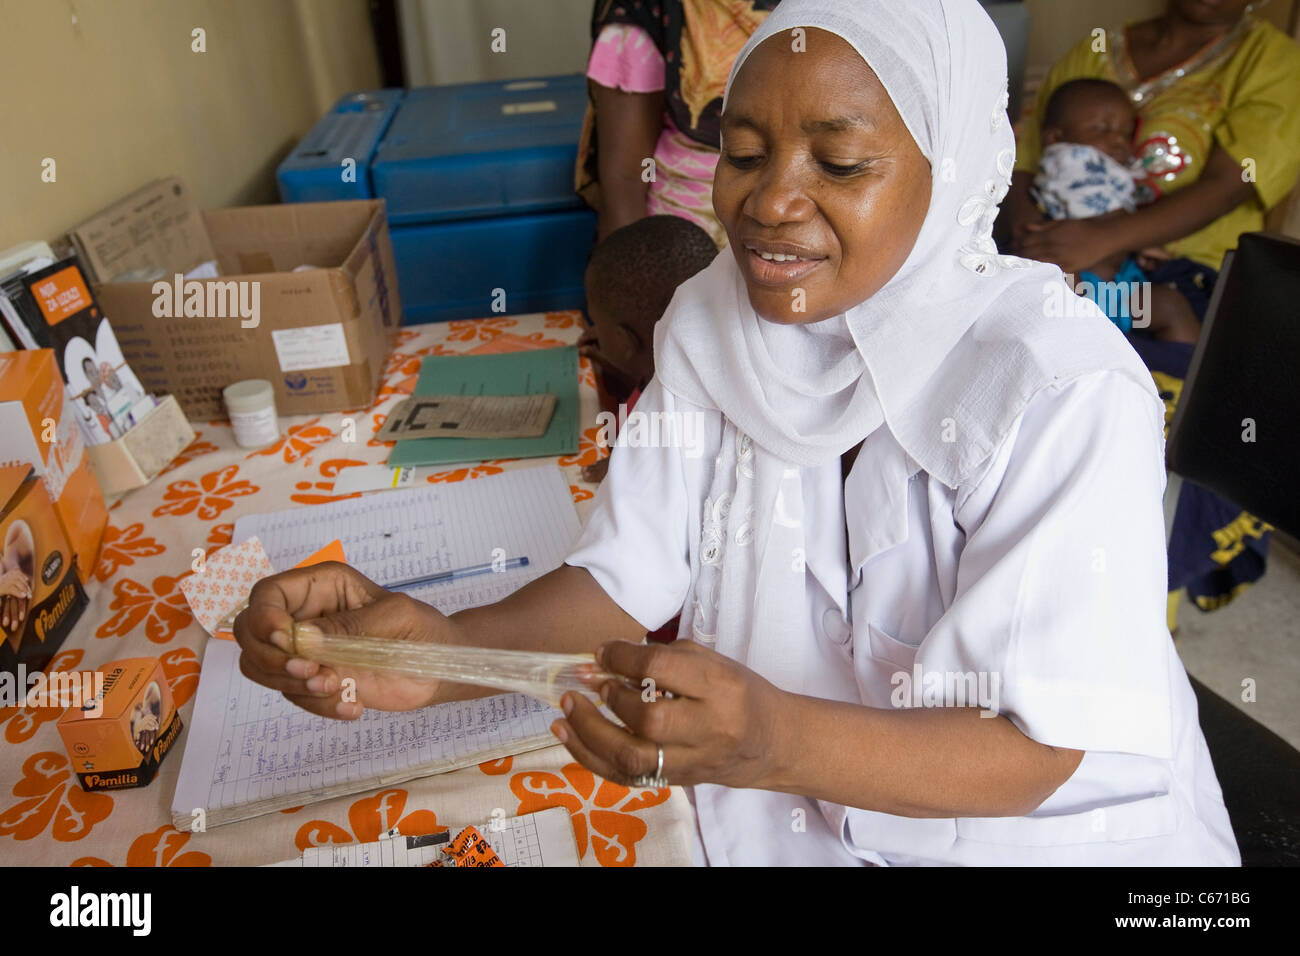 A woman demonstrates the use of a condom in a family planning clinic in Dar es Salaam, Tanzania, East Africa. - Stock Image